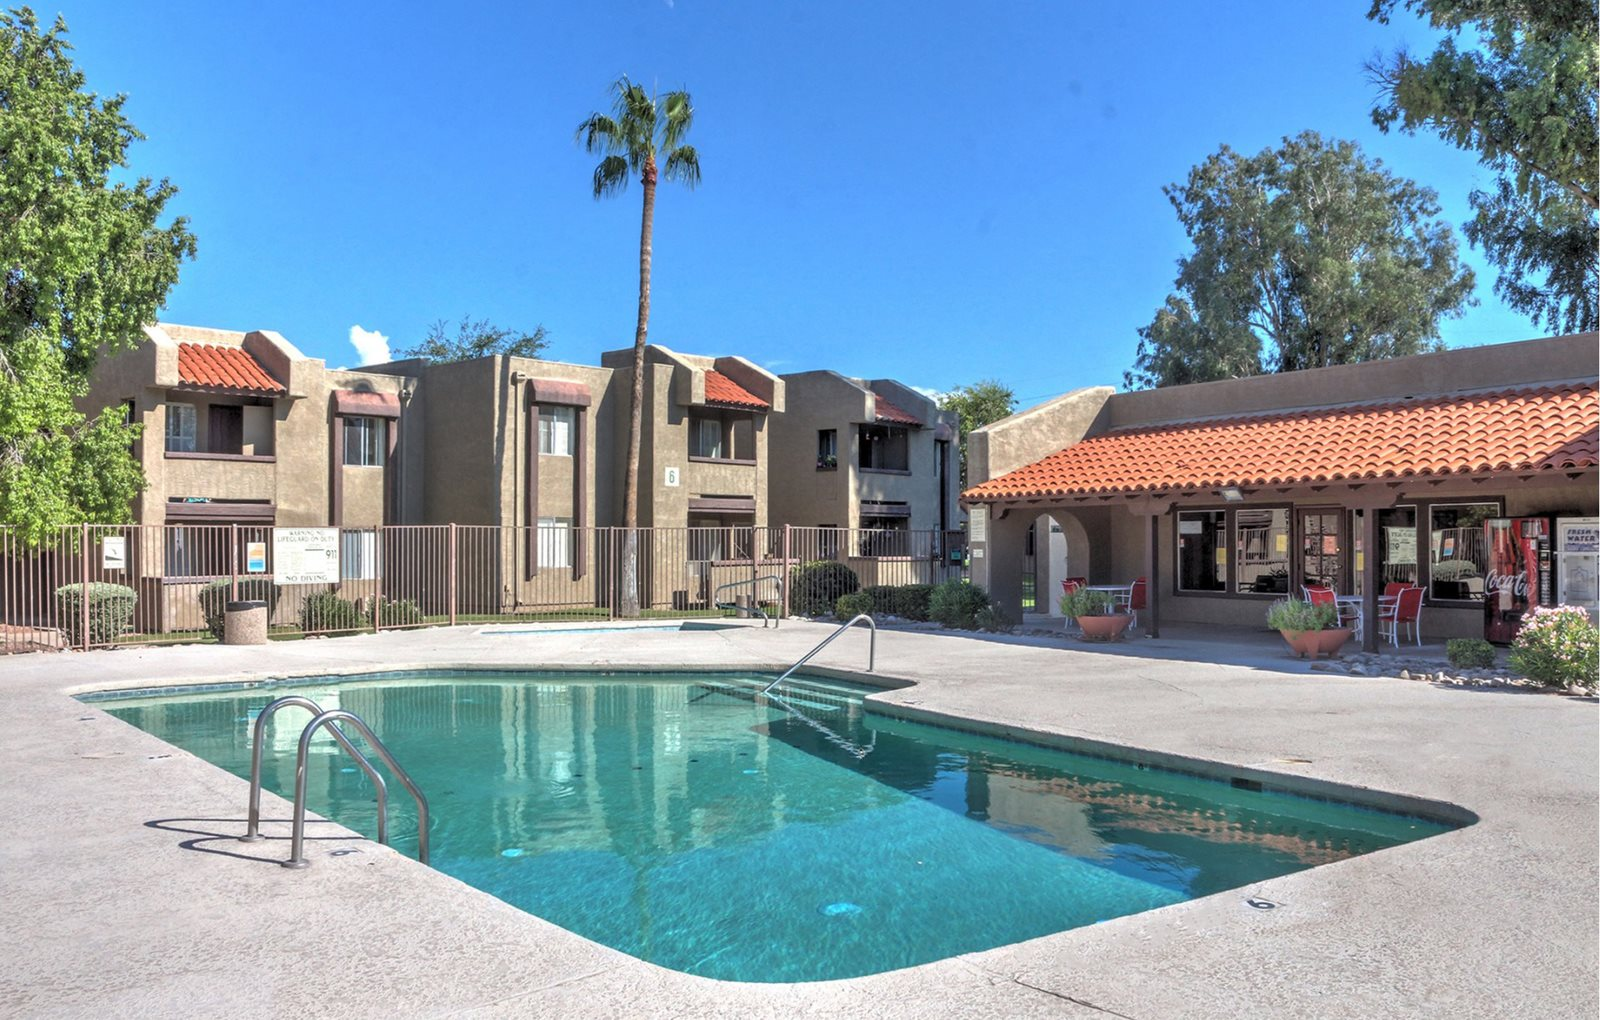 Pool and patio at Woodridge Apartments in Tucson, AZ